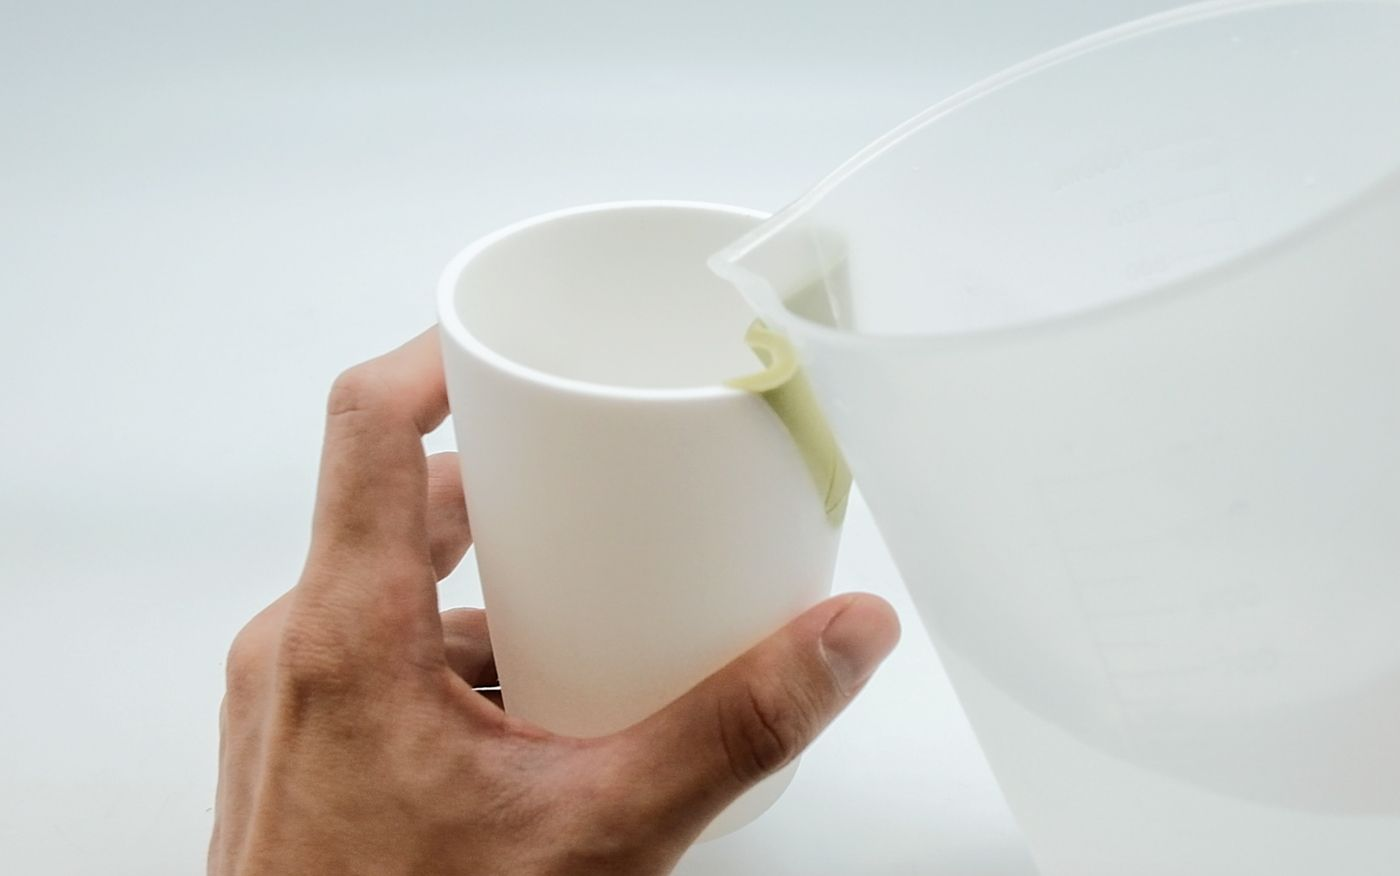 EATSY - Adaptive Tableware for the Visually Impaired on Behance